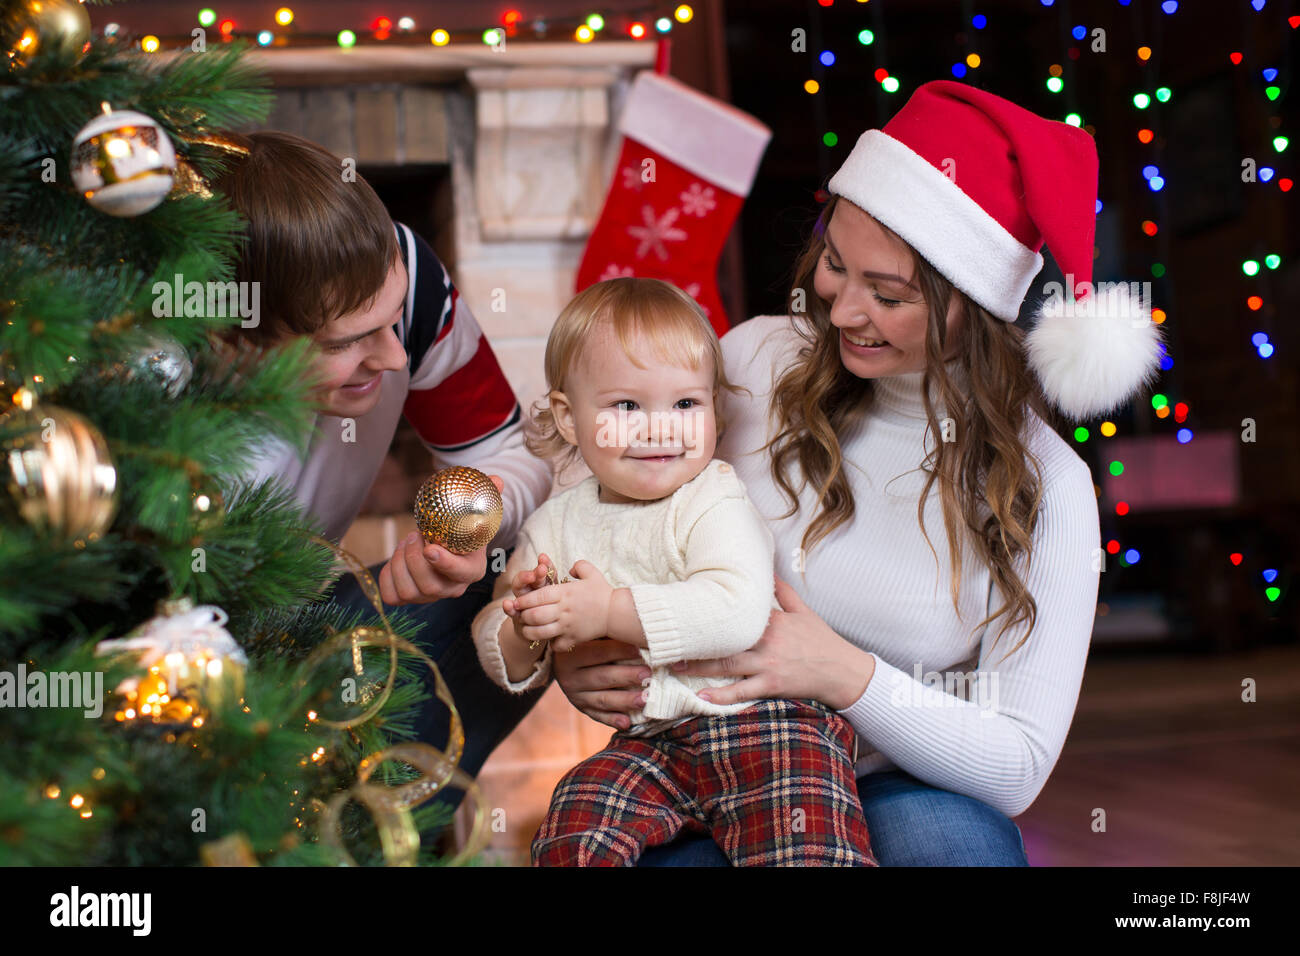 Happy family with child decorating Christmas tree in front of fireplace  in living room - Stock Image